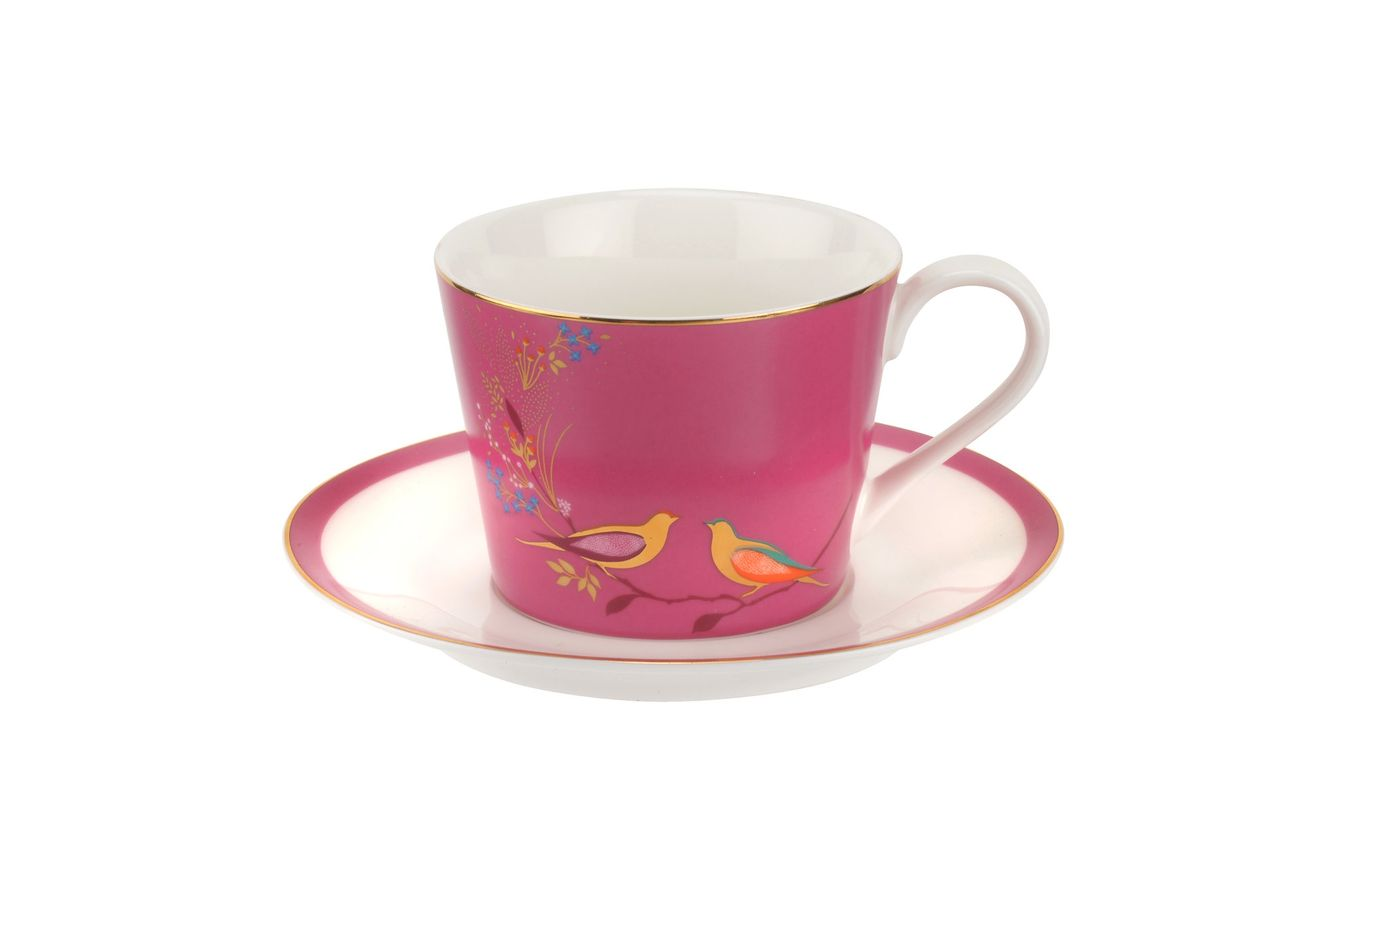 Sara Miller London for Portmeirion Chelsea Collection Teacup & Saucer Pink 0.2l thumb 1